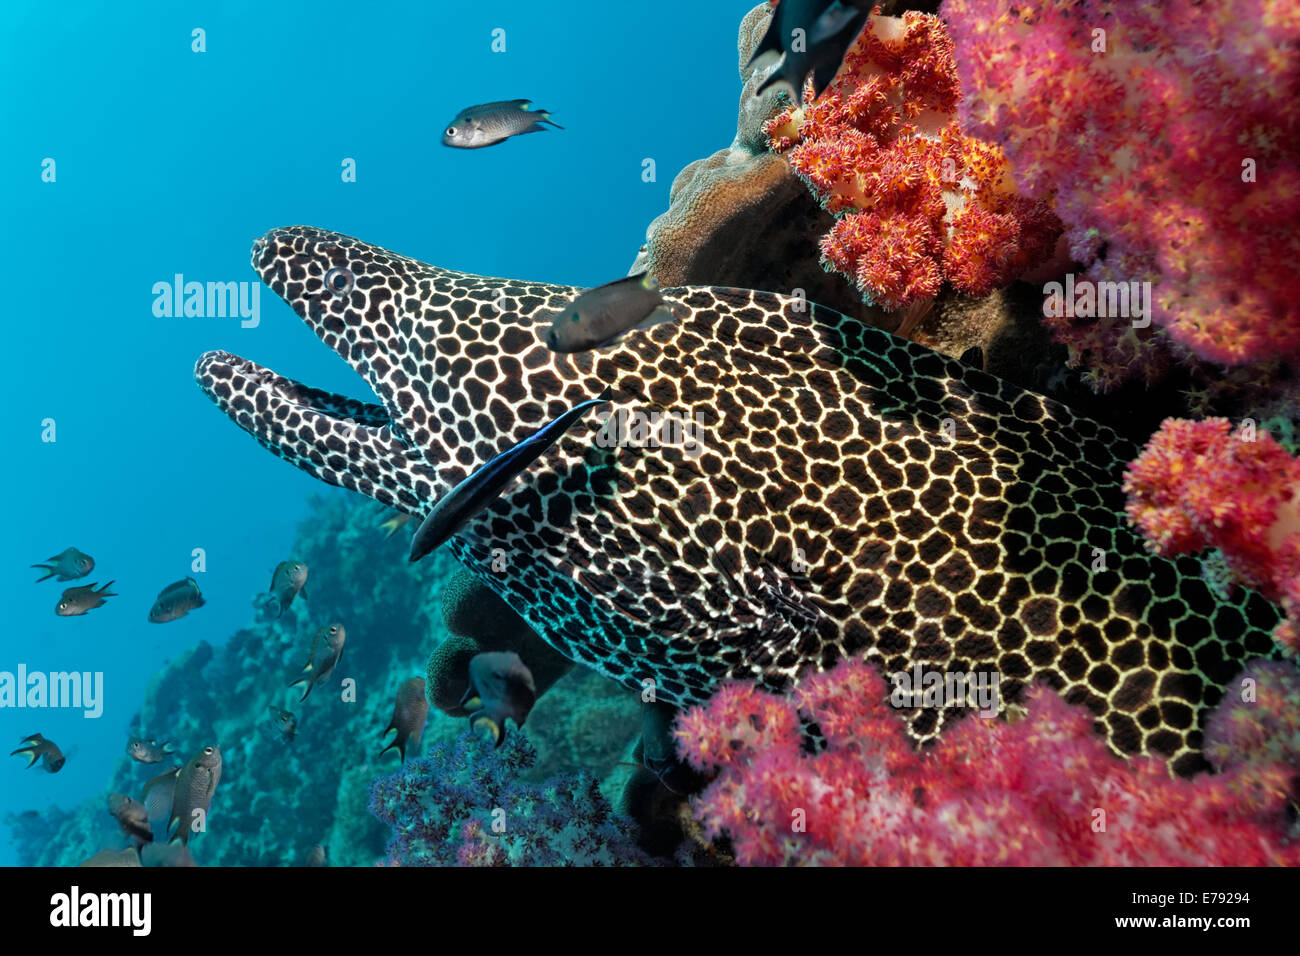 Laced Moray (Gymnothorax favagineus) at a coral reef with soft corals, Dimaniyat Islands nature reserve, Al Batinah - Stock Image